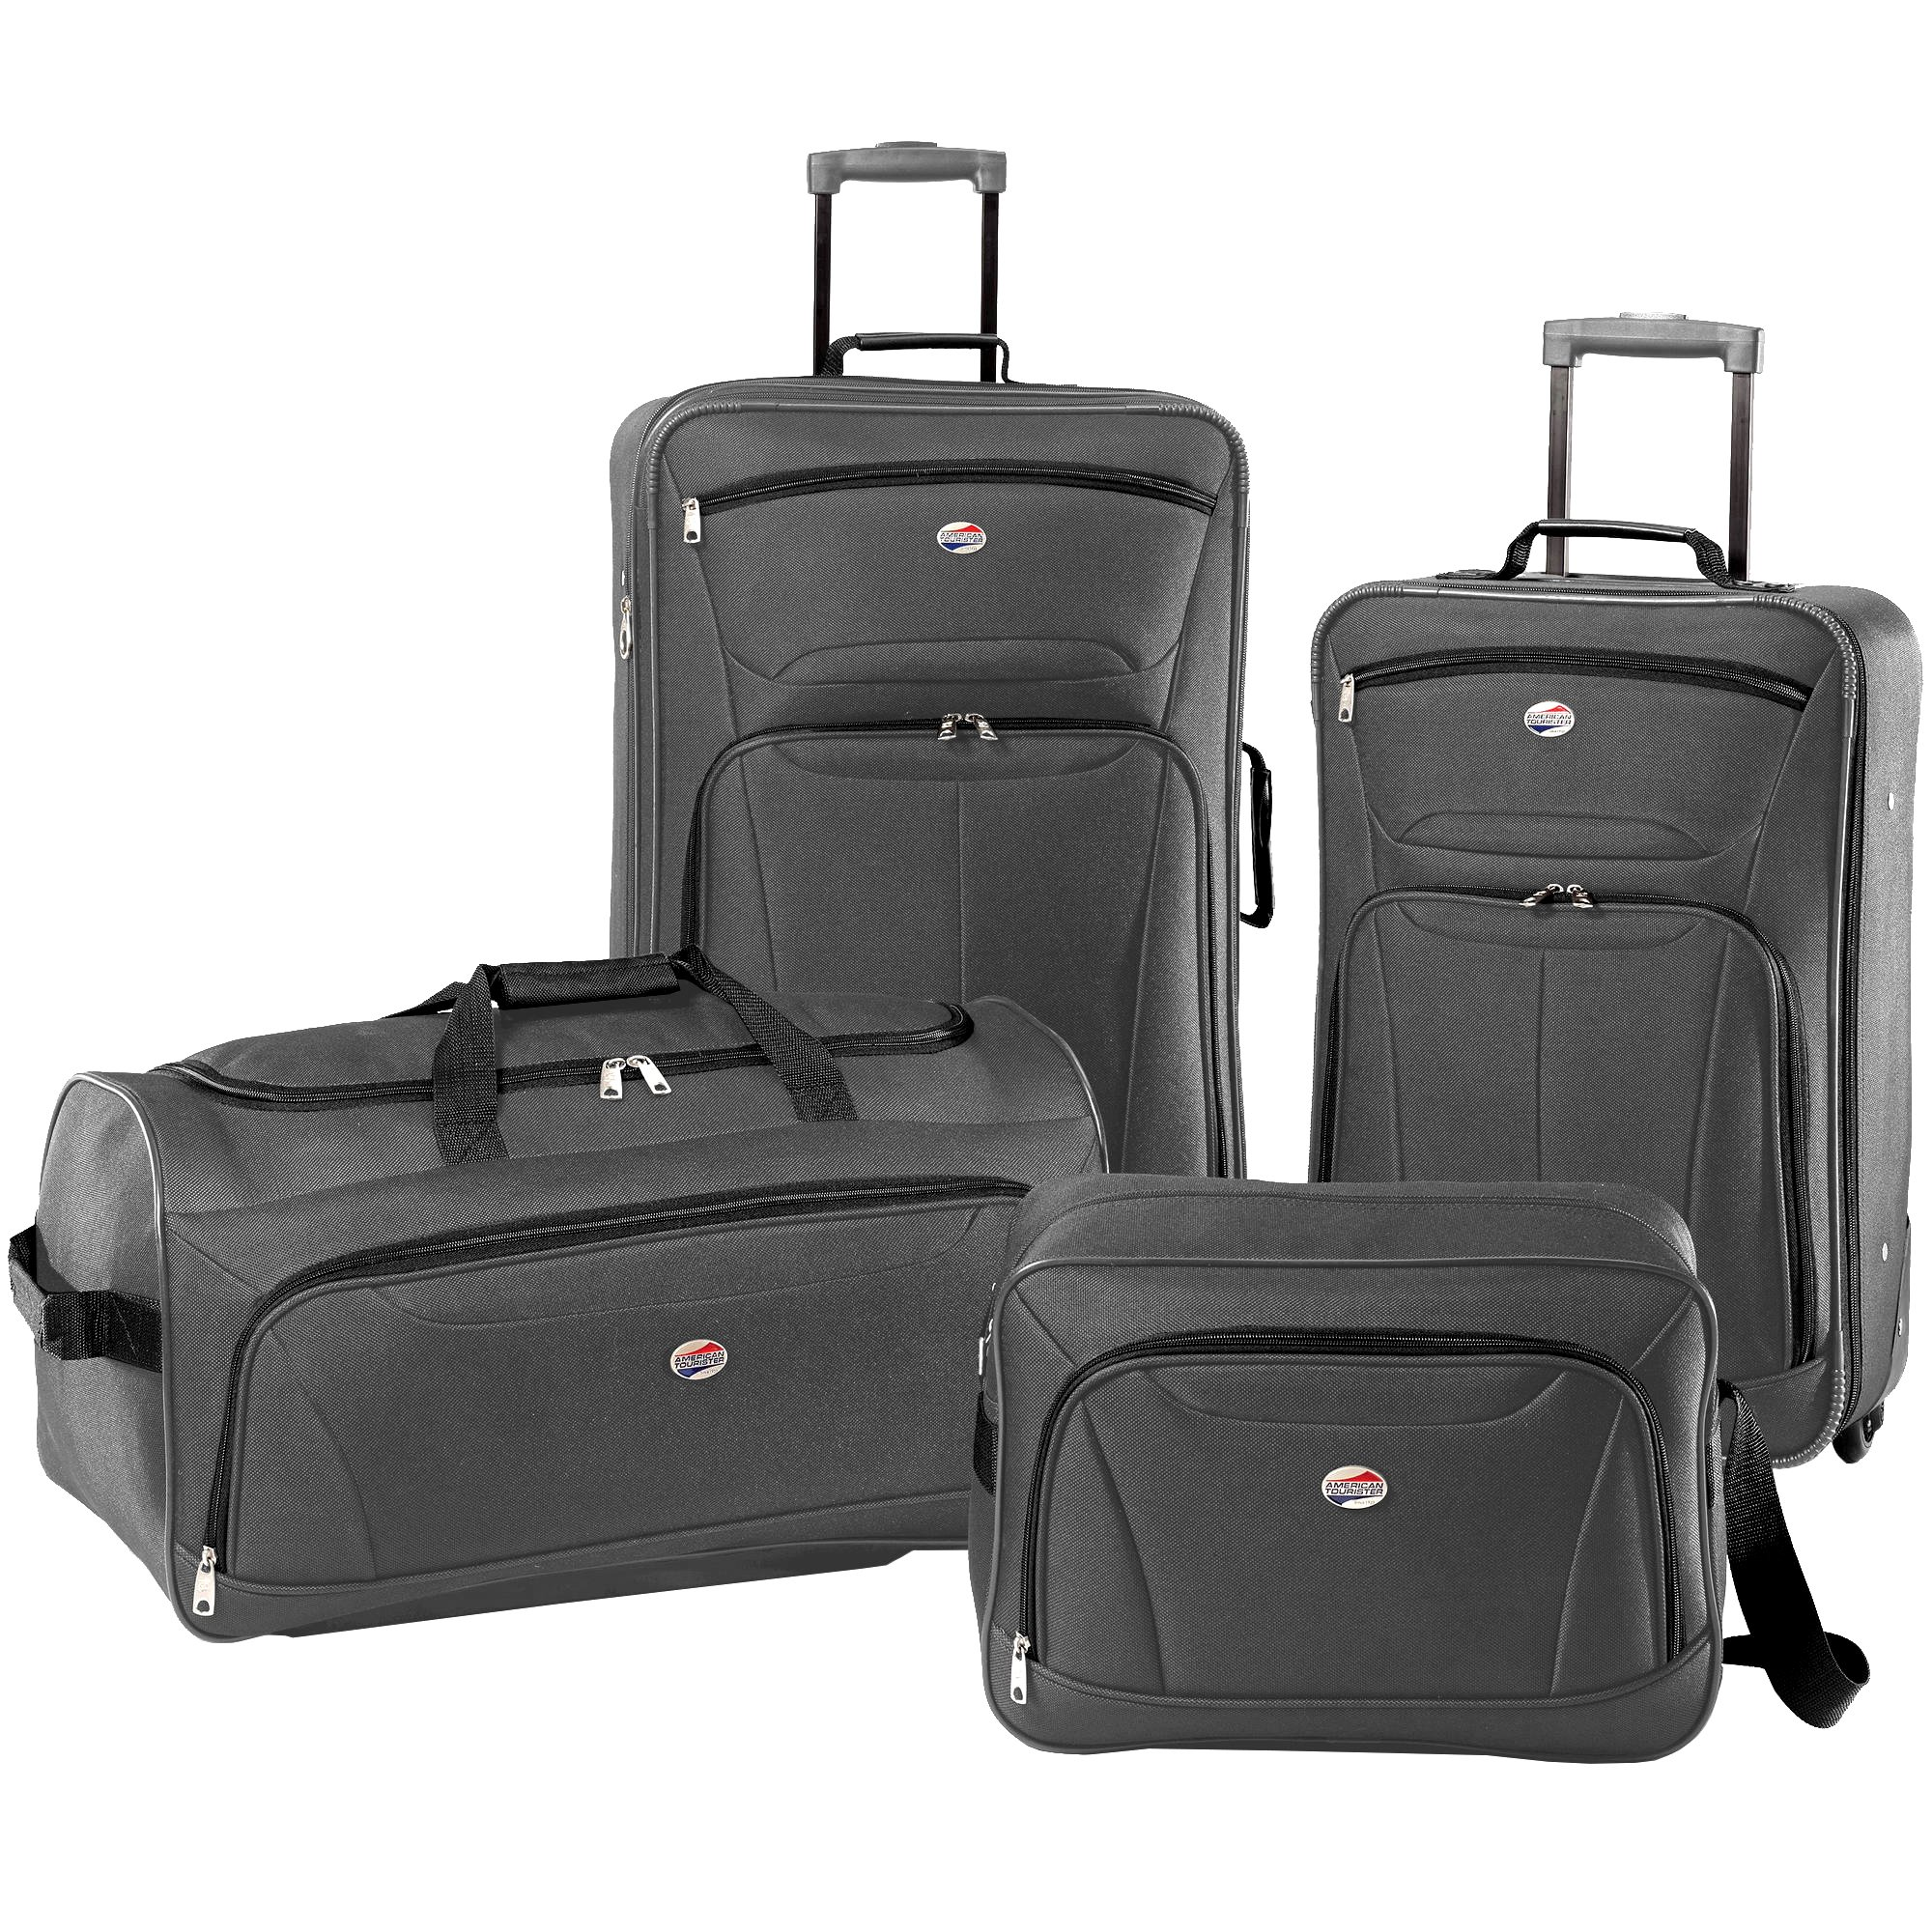 American Tourister Luggage Fieldbrook II 4 Piece Set (Charcoal)